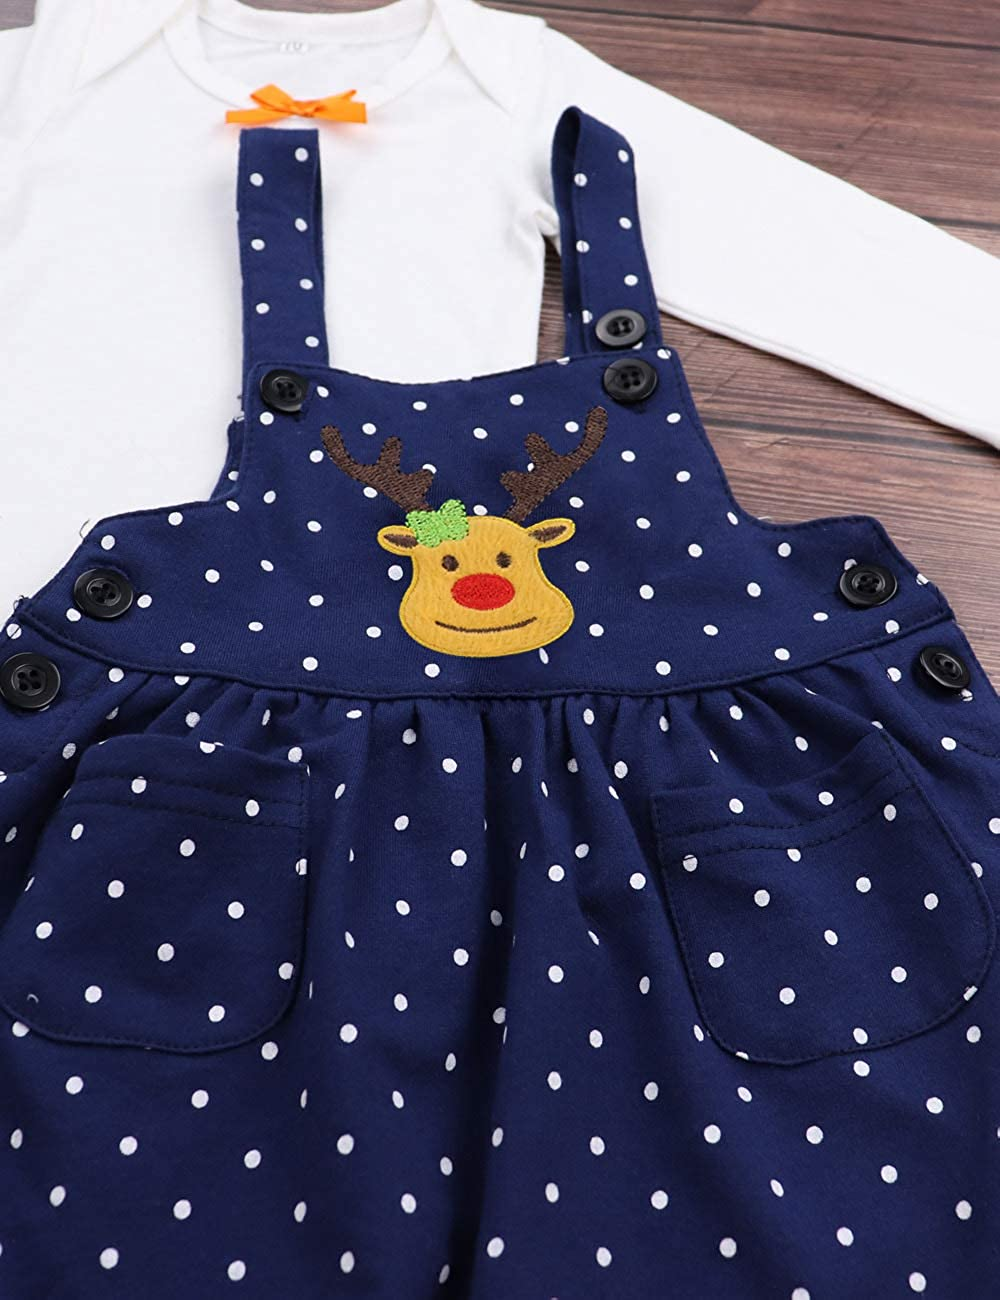 Baby Girl 1st Thanksgiving Outfit My 1st Thanksgiving Romper Skirt 2PCS Clothing Set